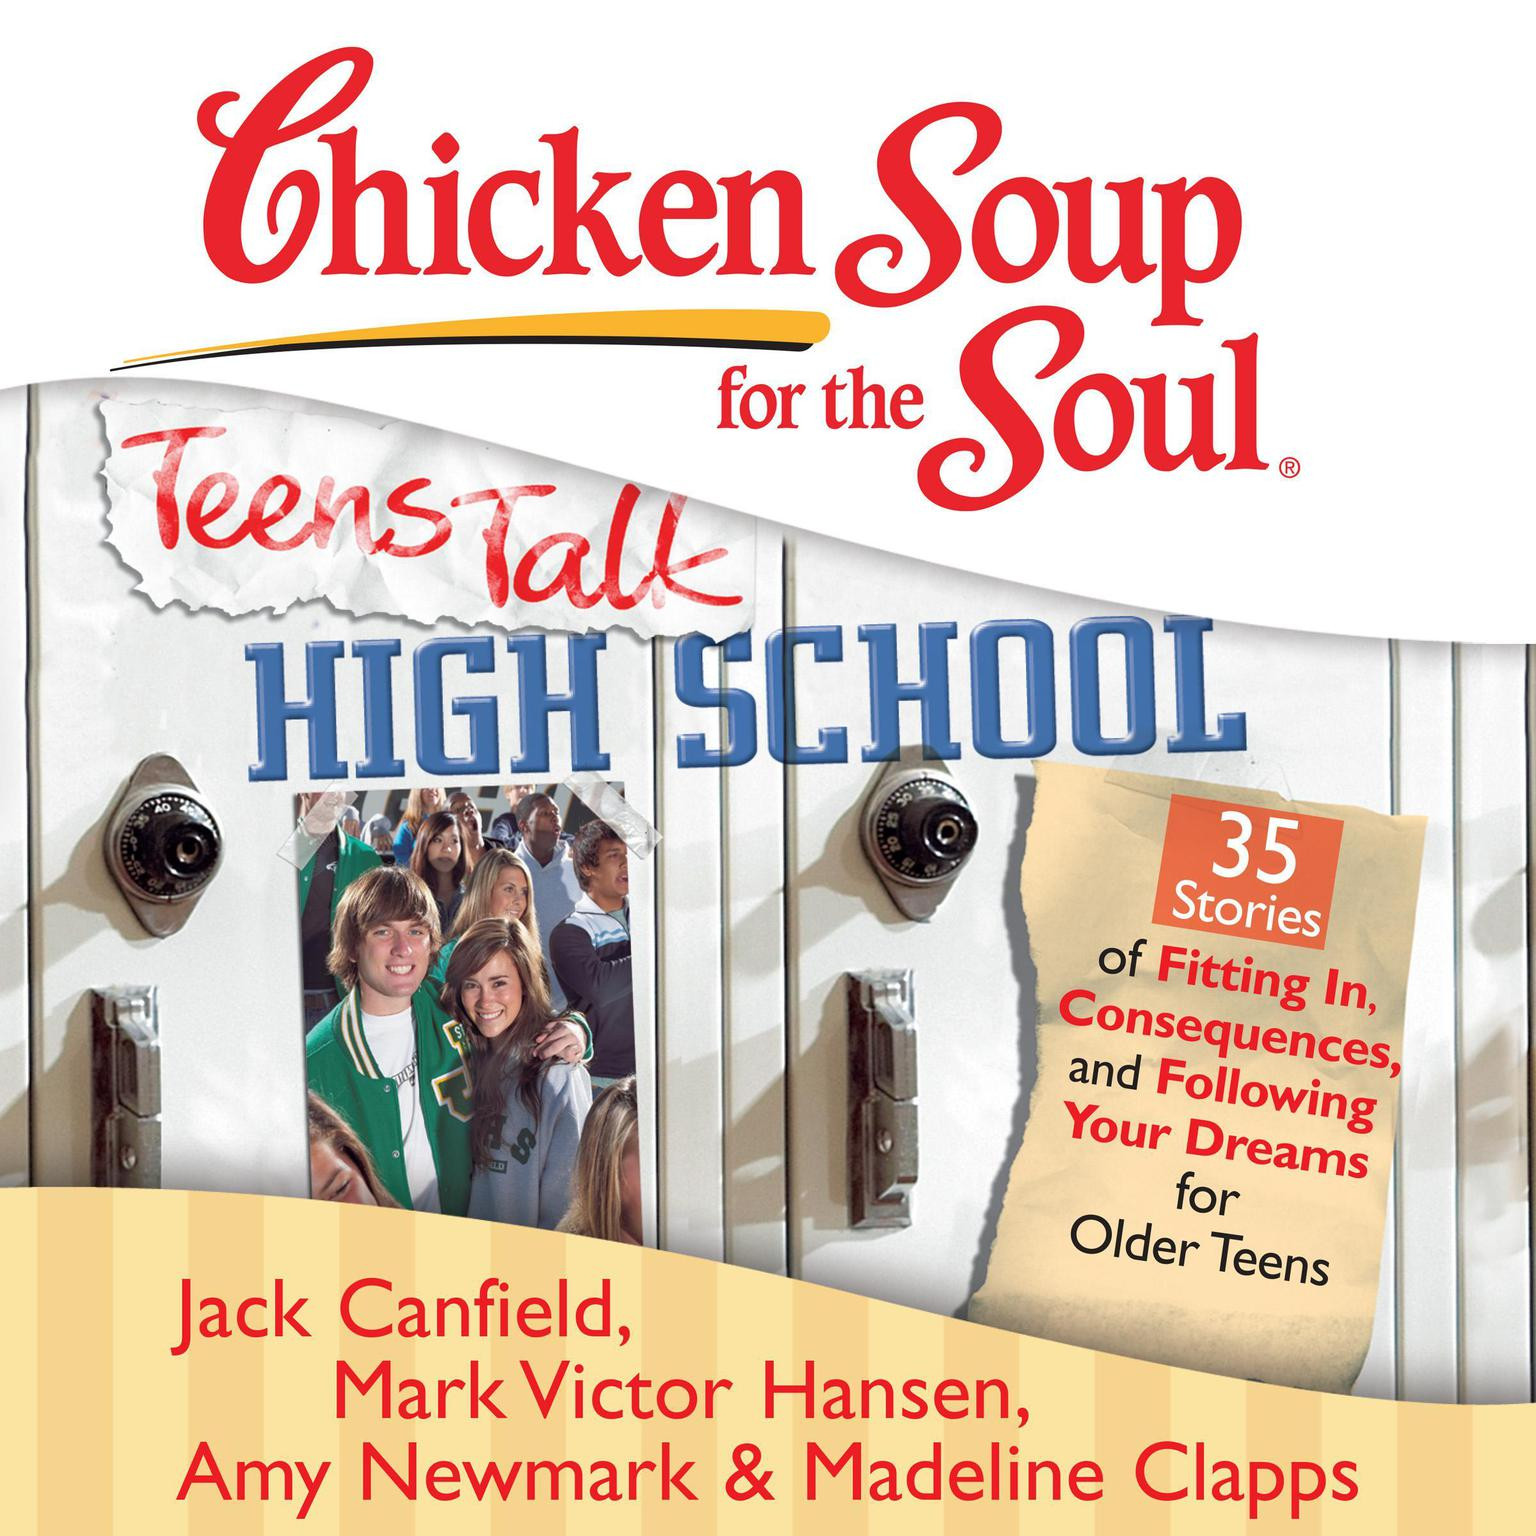 Chicken Soup For The Soul Stories  Download Chicken Soup for the Soul Teens Talk High School